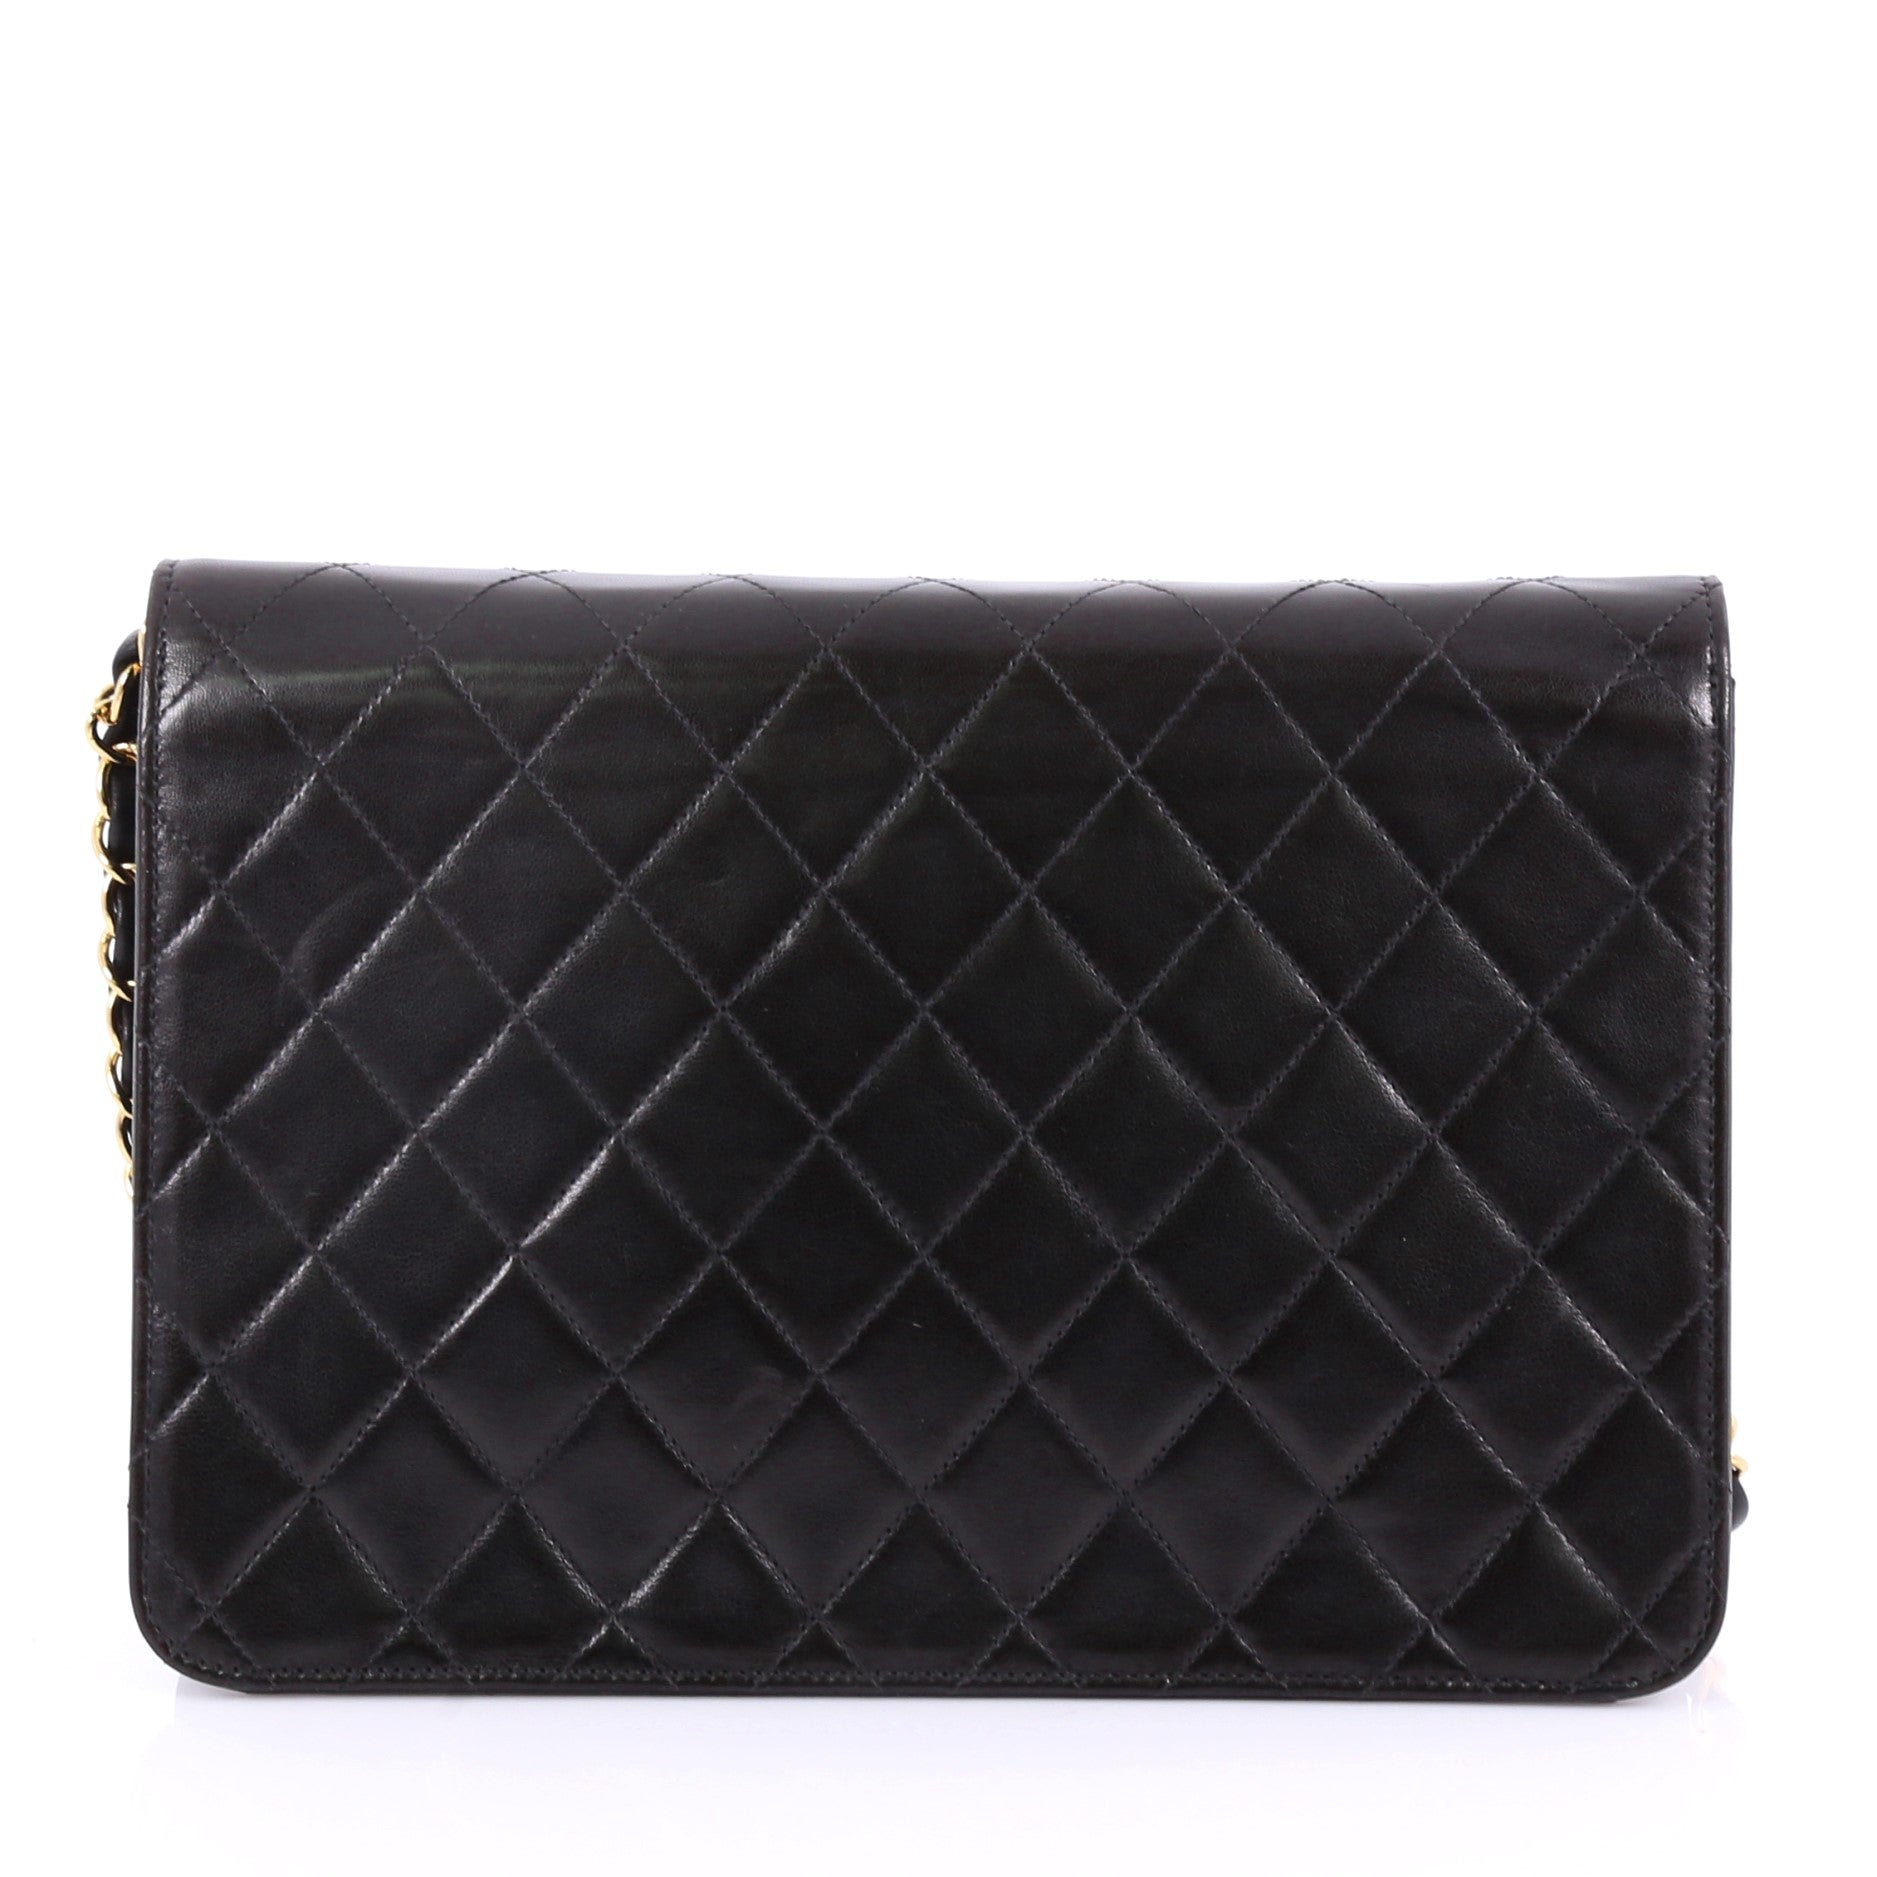 c3637638b08a Chanel Vintage Clutch with Chain Quilted Leather Medium at 1stdibs